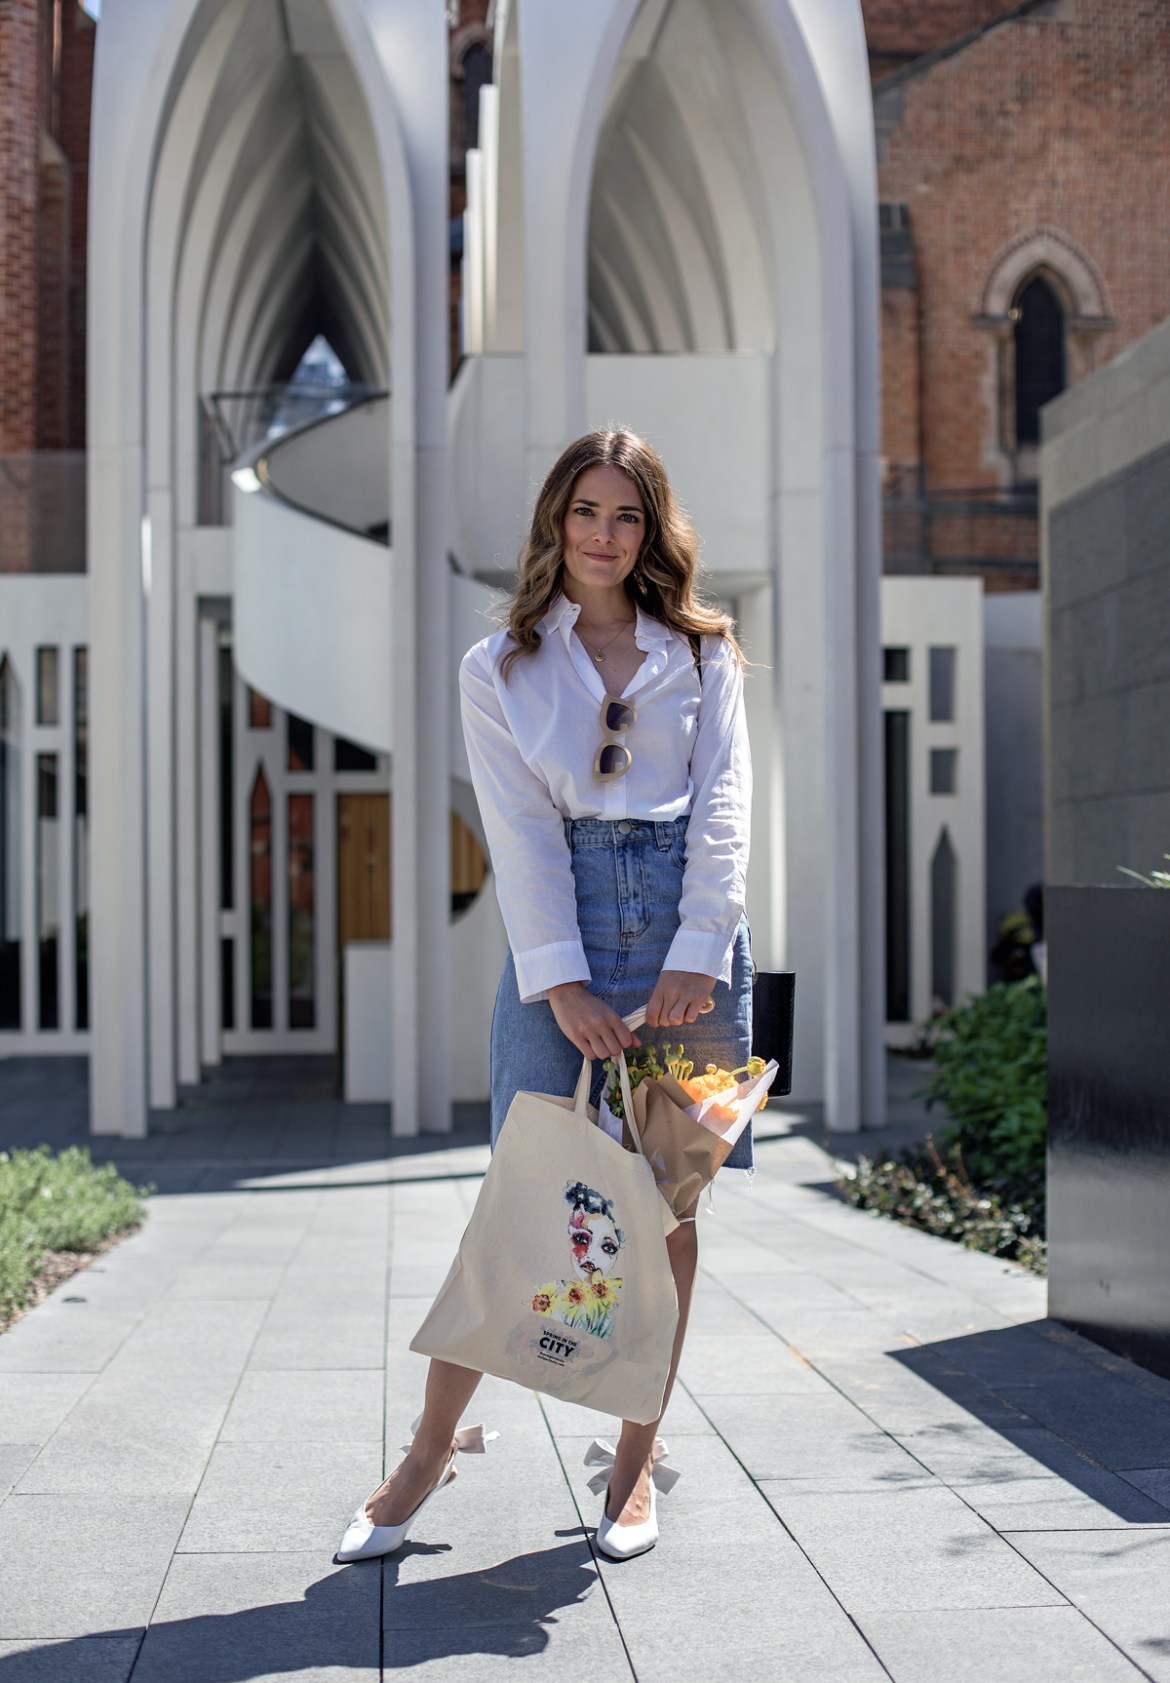 Jenelle Witty from Perth blog Inspiring Wit with one of the City of Perth Spring in the City tote bags